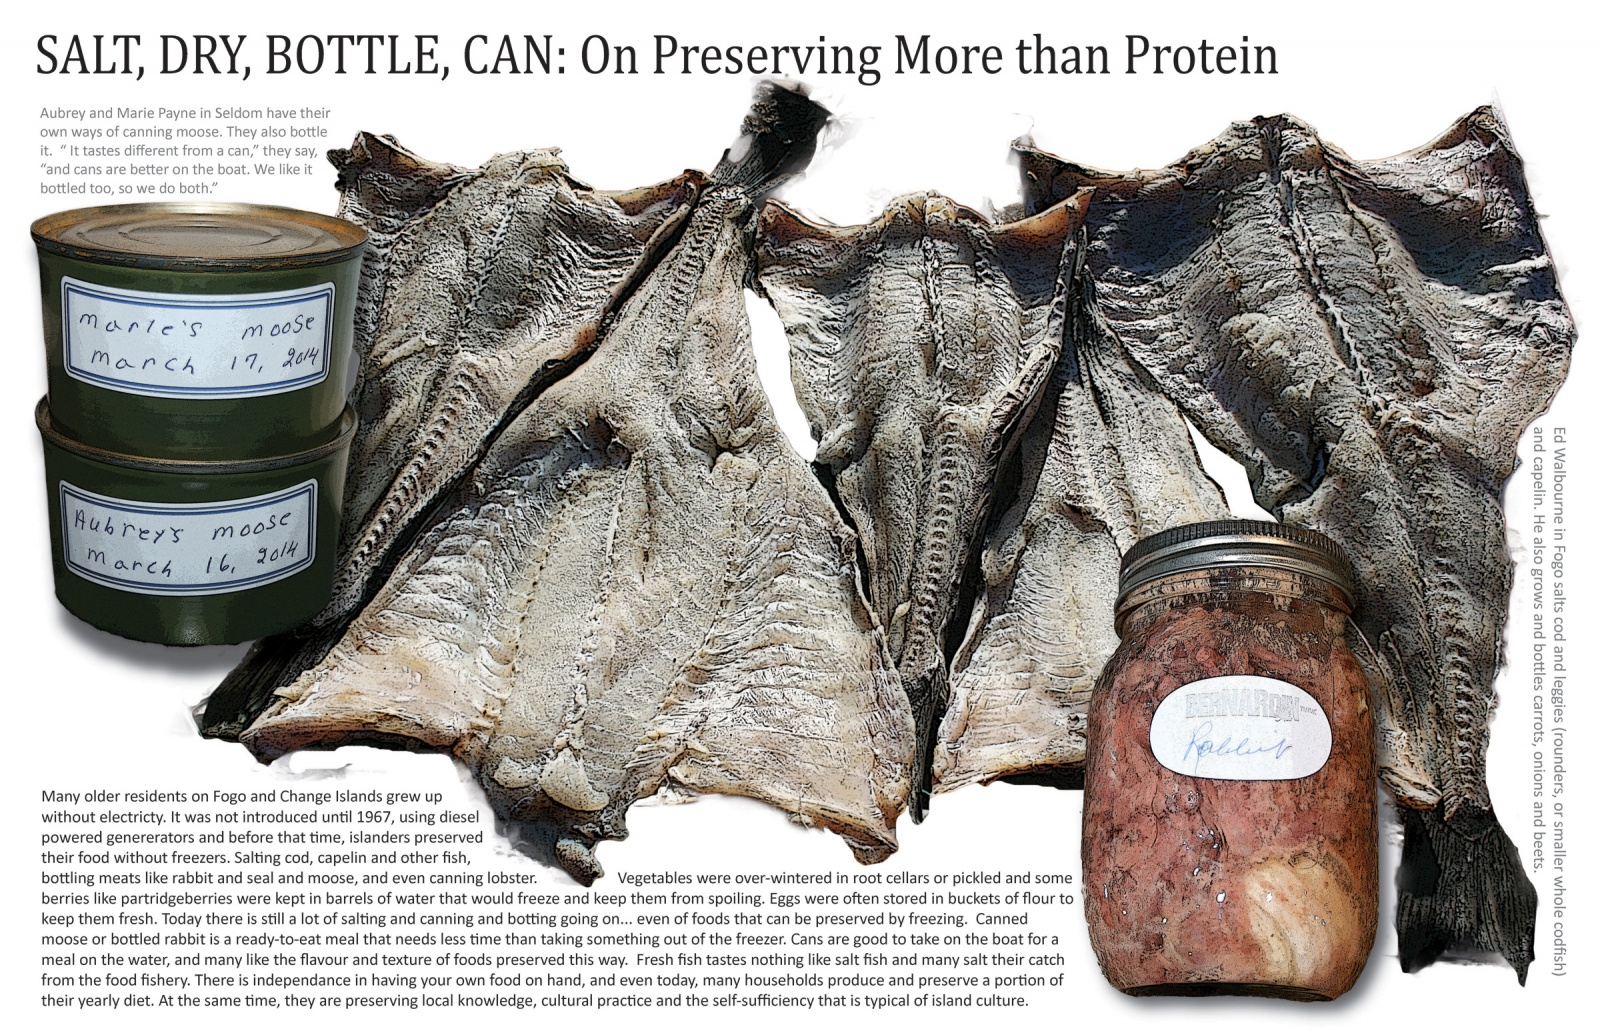 Salt, Dry, Bottle, Can: On Preserving More than Protein